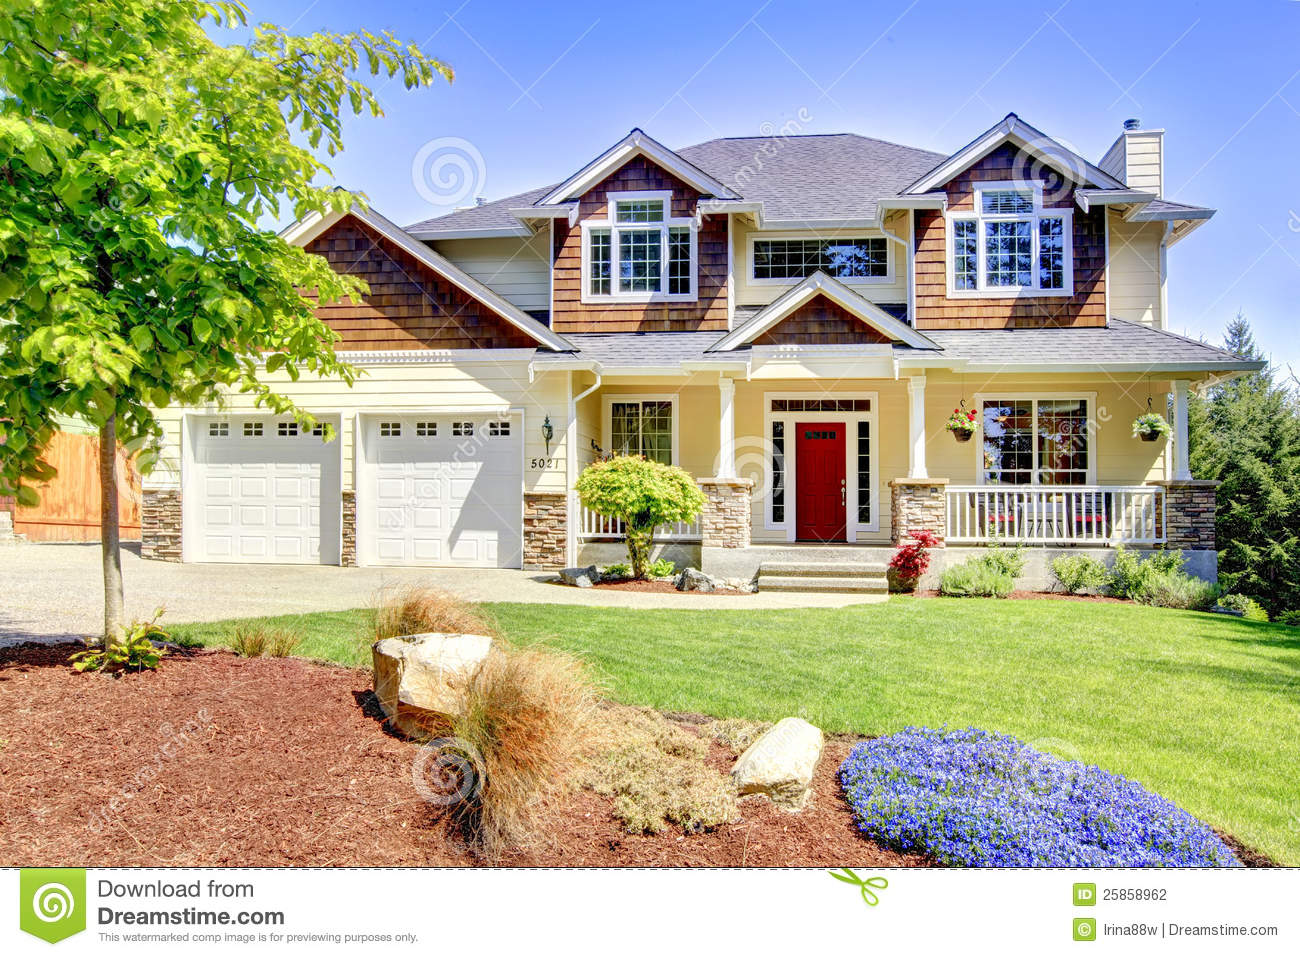 Large American Beautiful House With Red Door Stock Photo